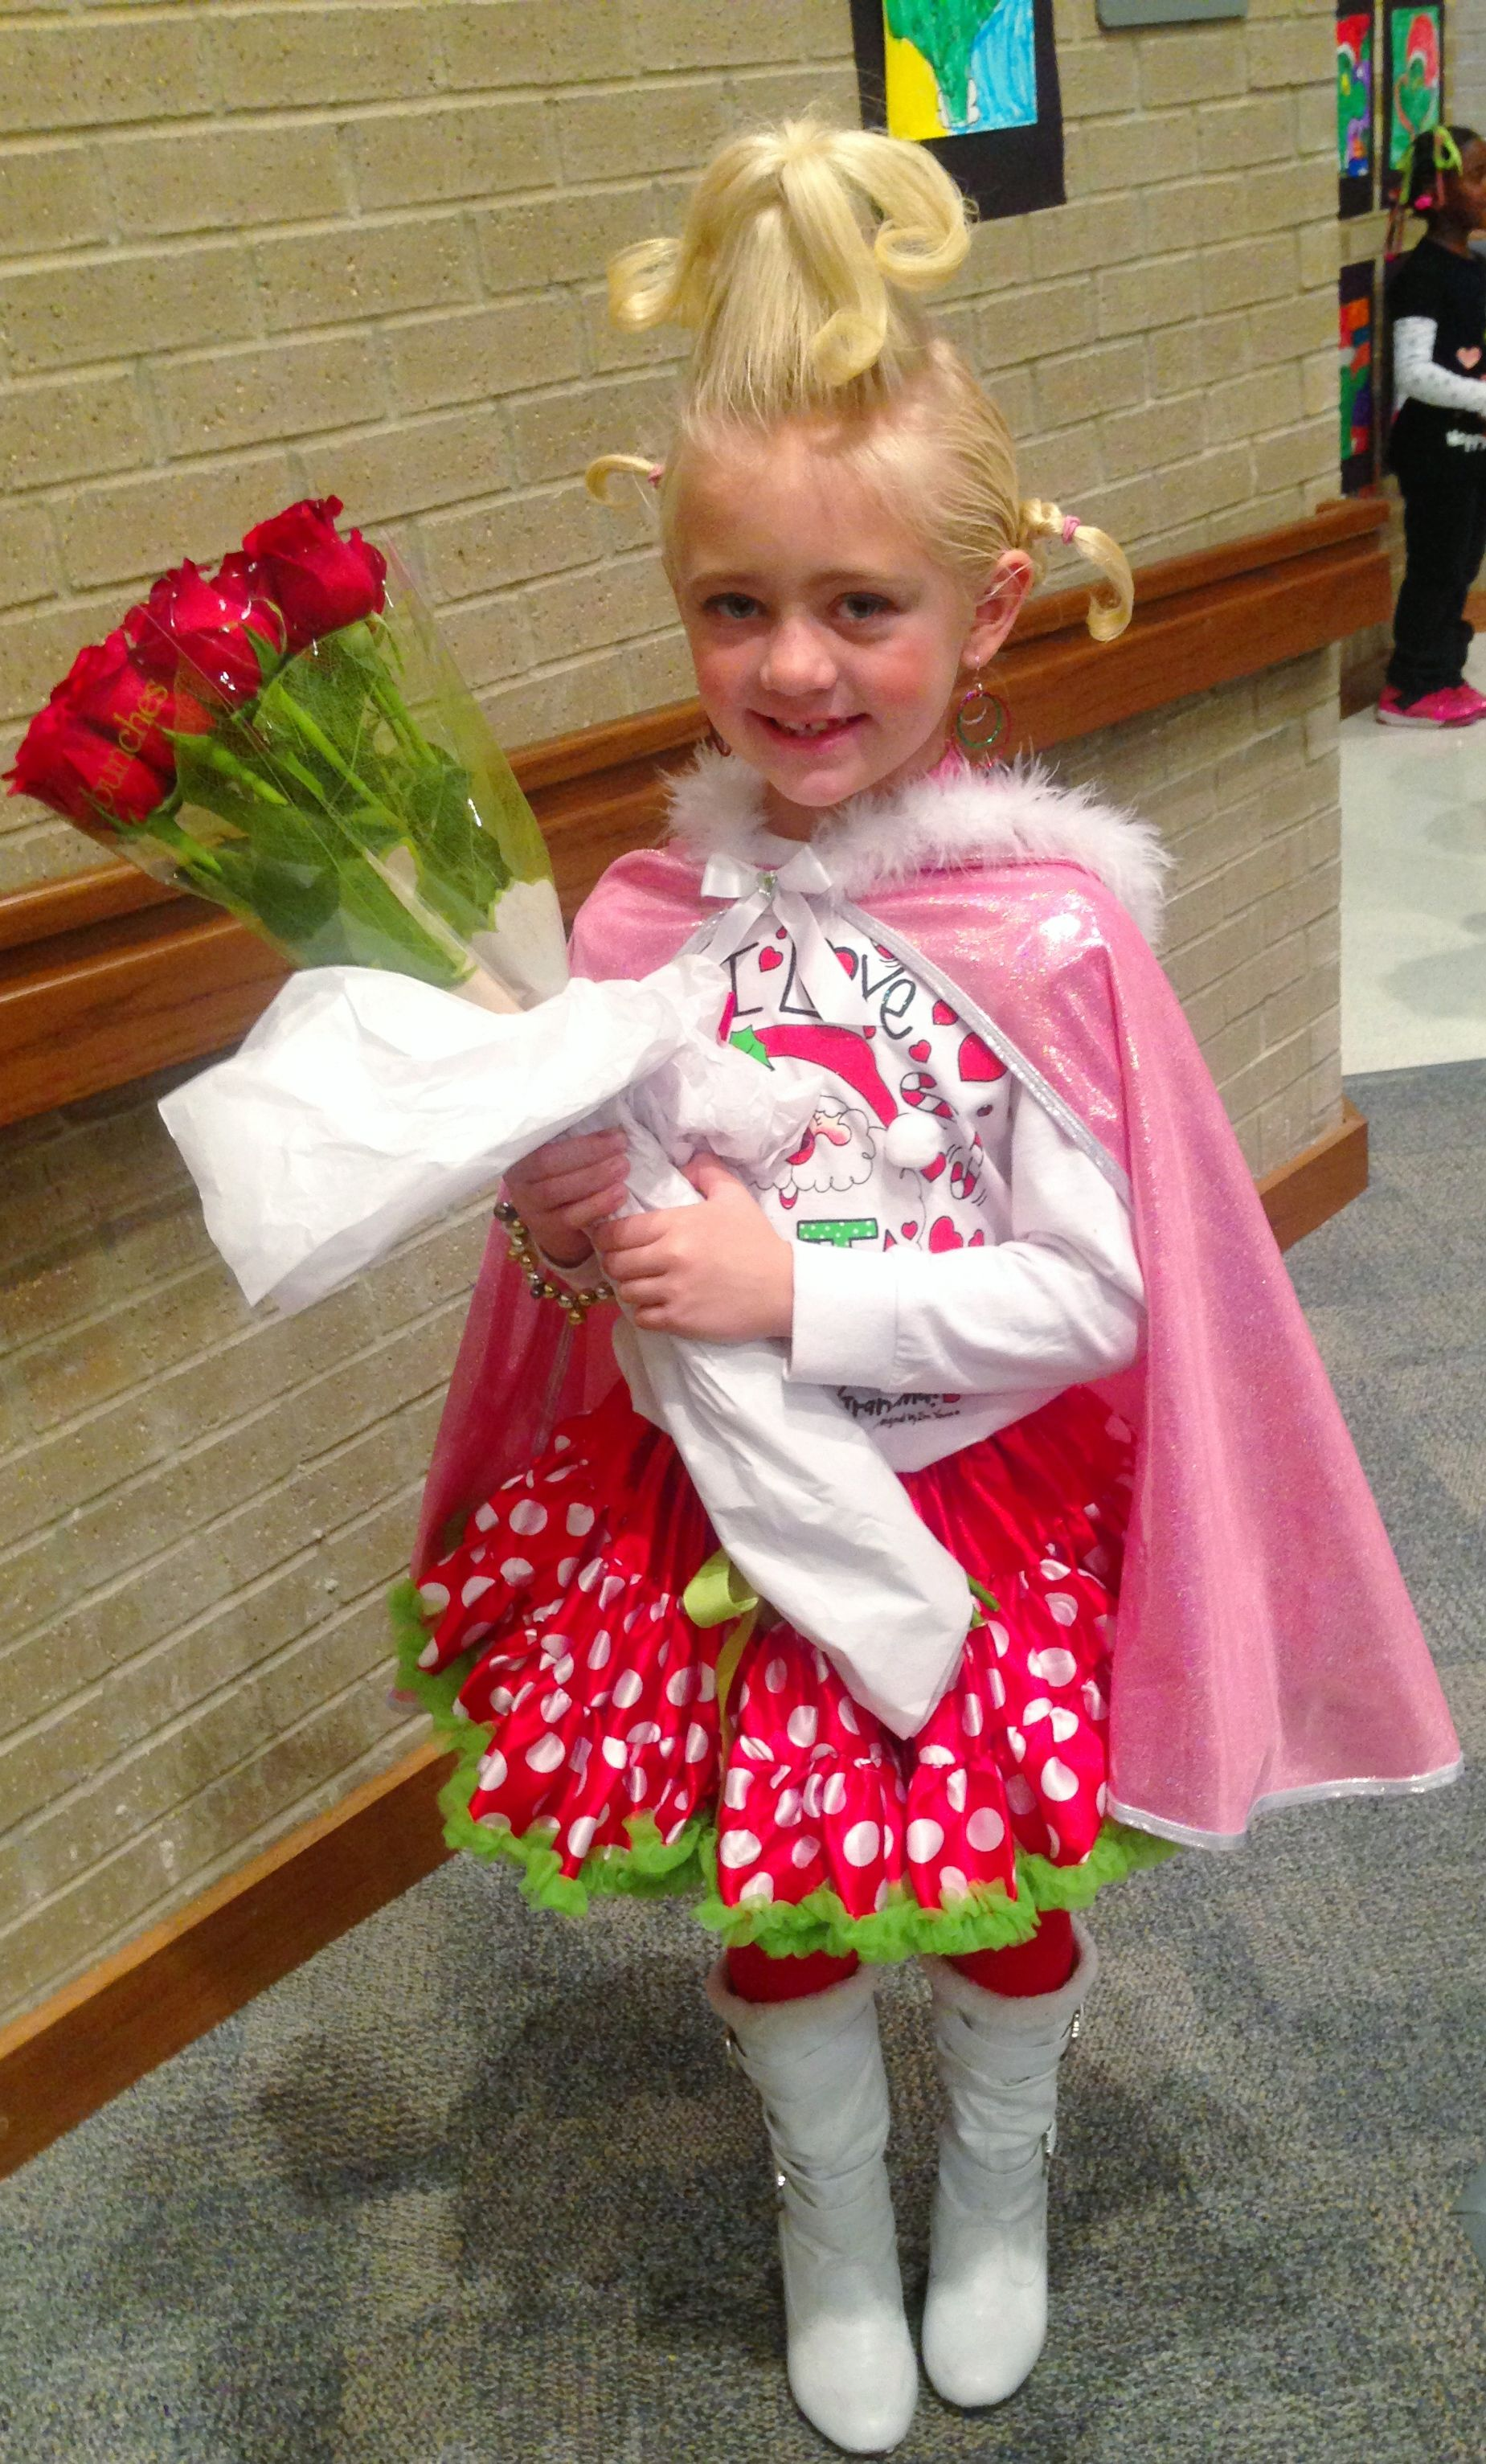 How to make your own grinch costume - Dresses The Girls Up Like This Tonight Little Cindy Lou Who How The Grinch Stole Christmas Costume